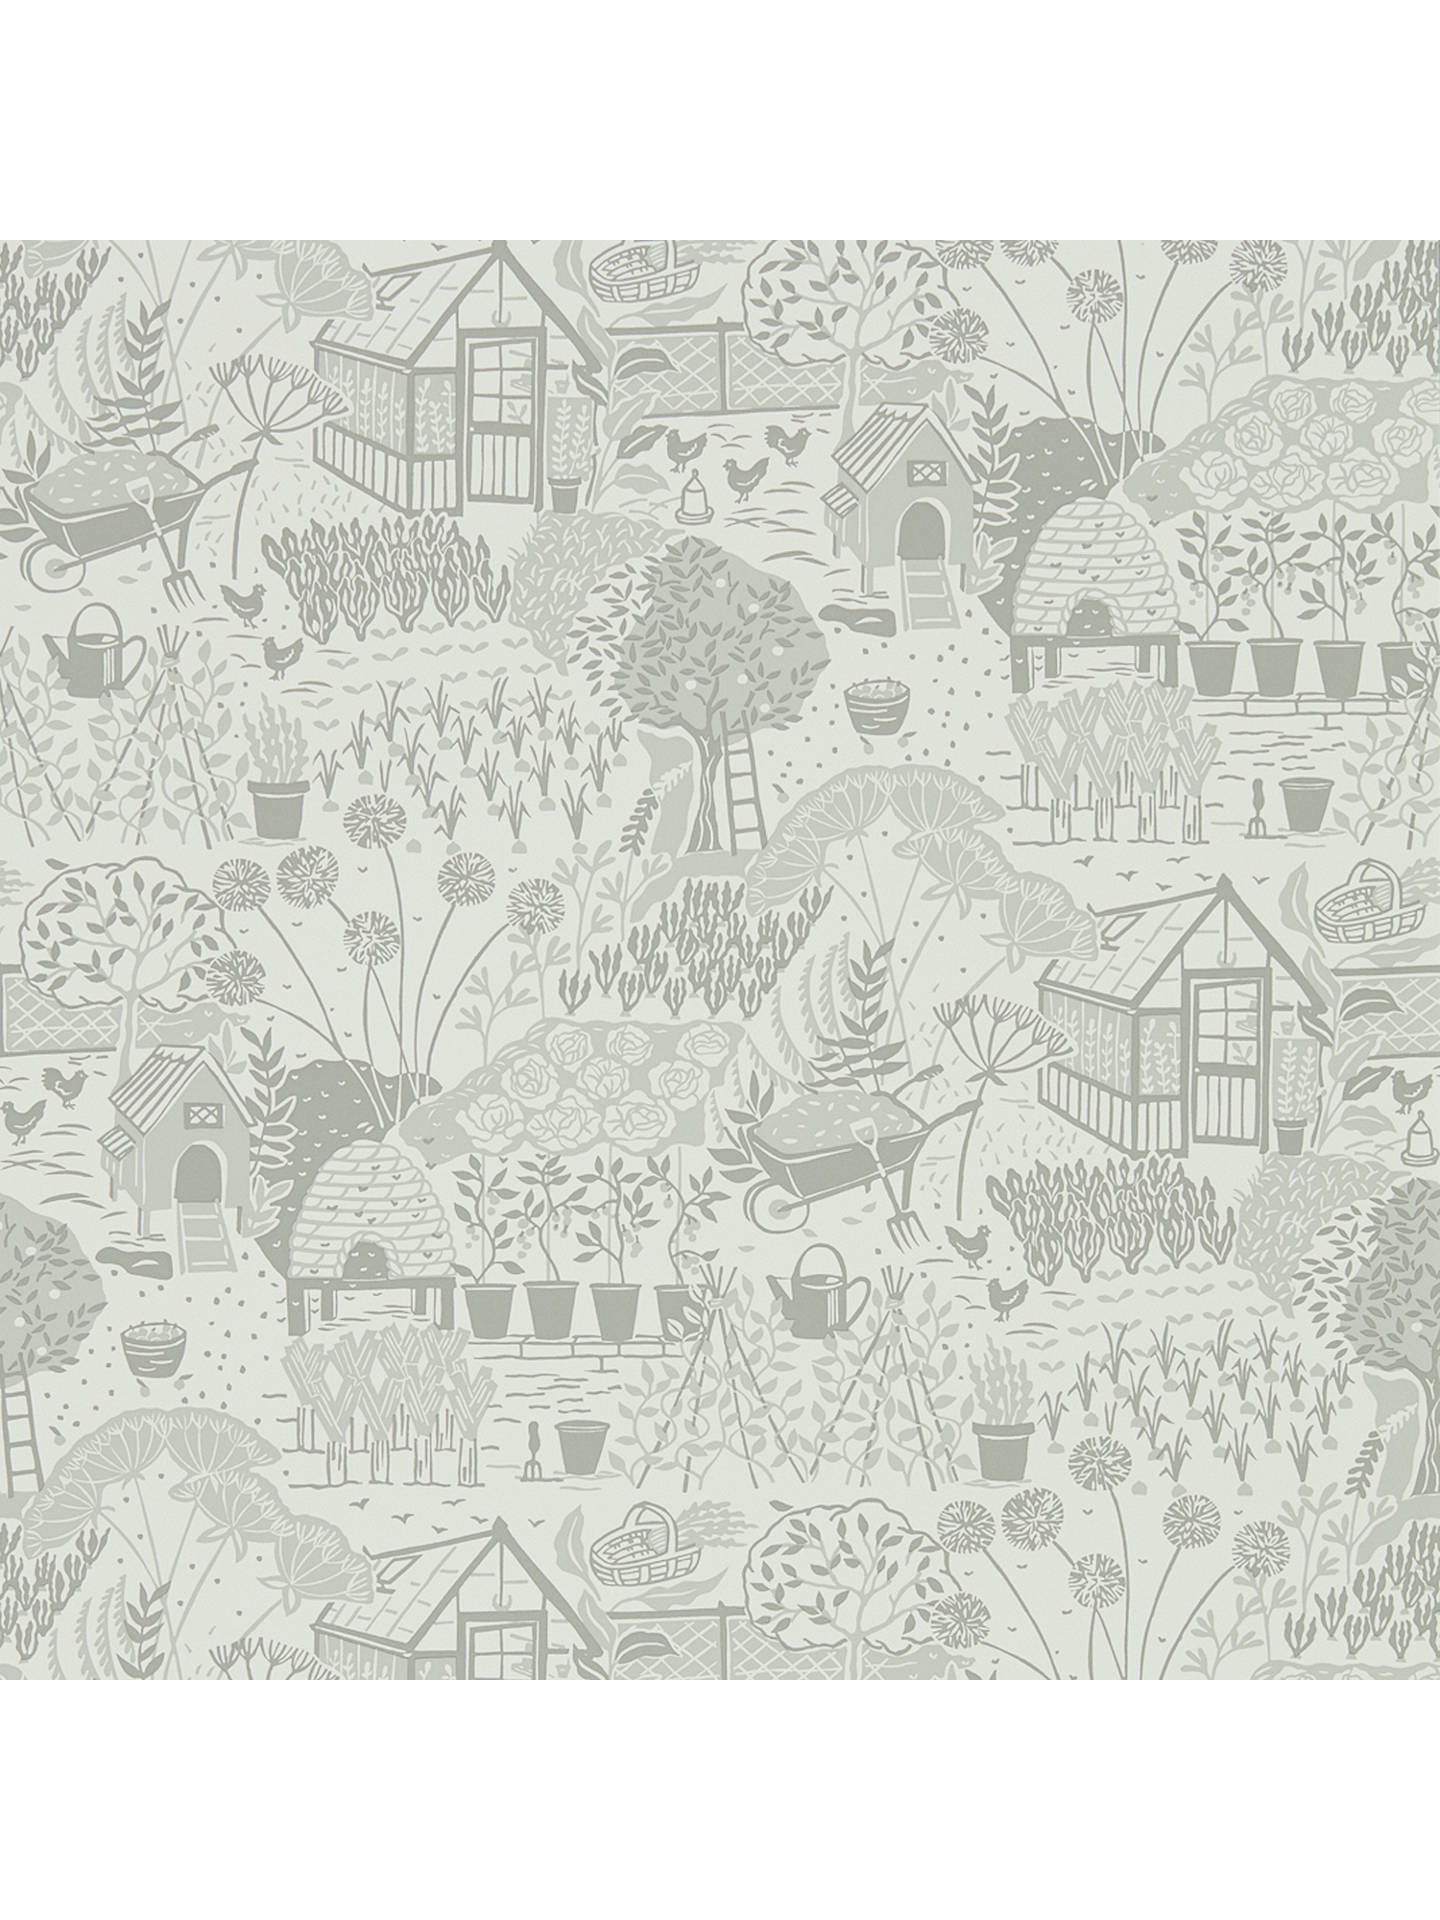 BuySanderson Home The Allotment Wallpaper DHPO216352 Online at johnlewis.com